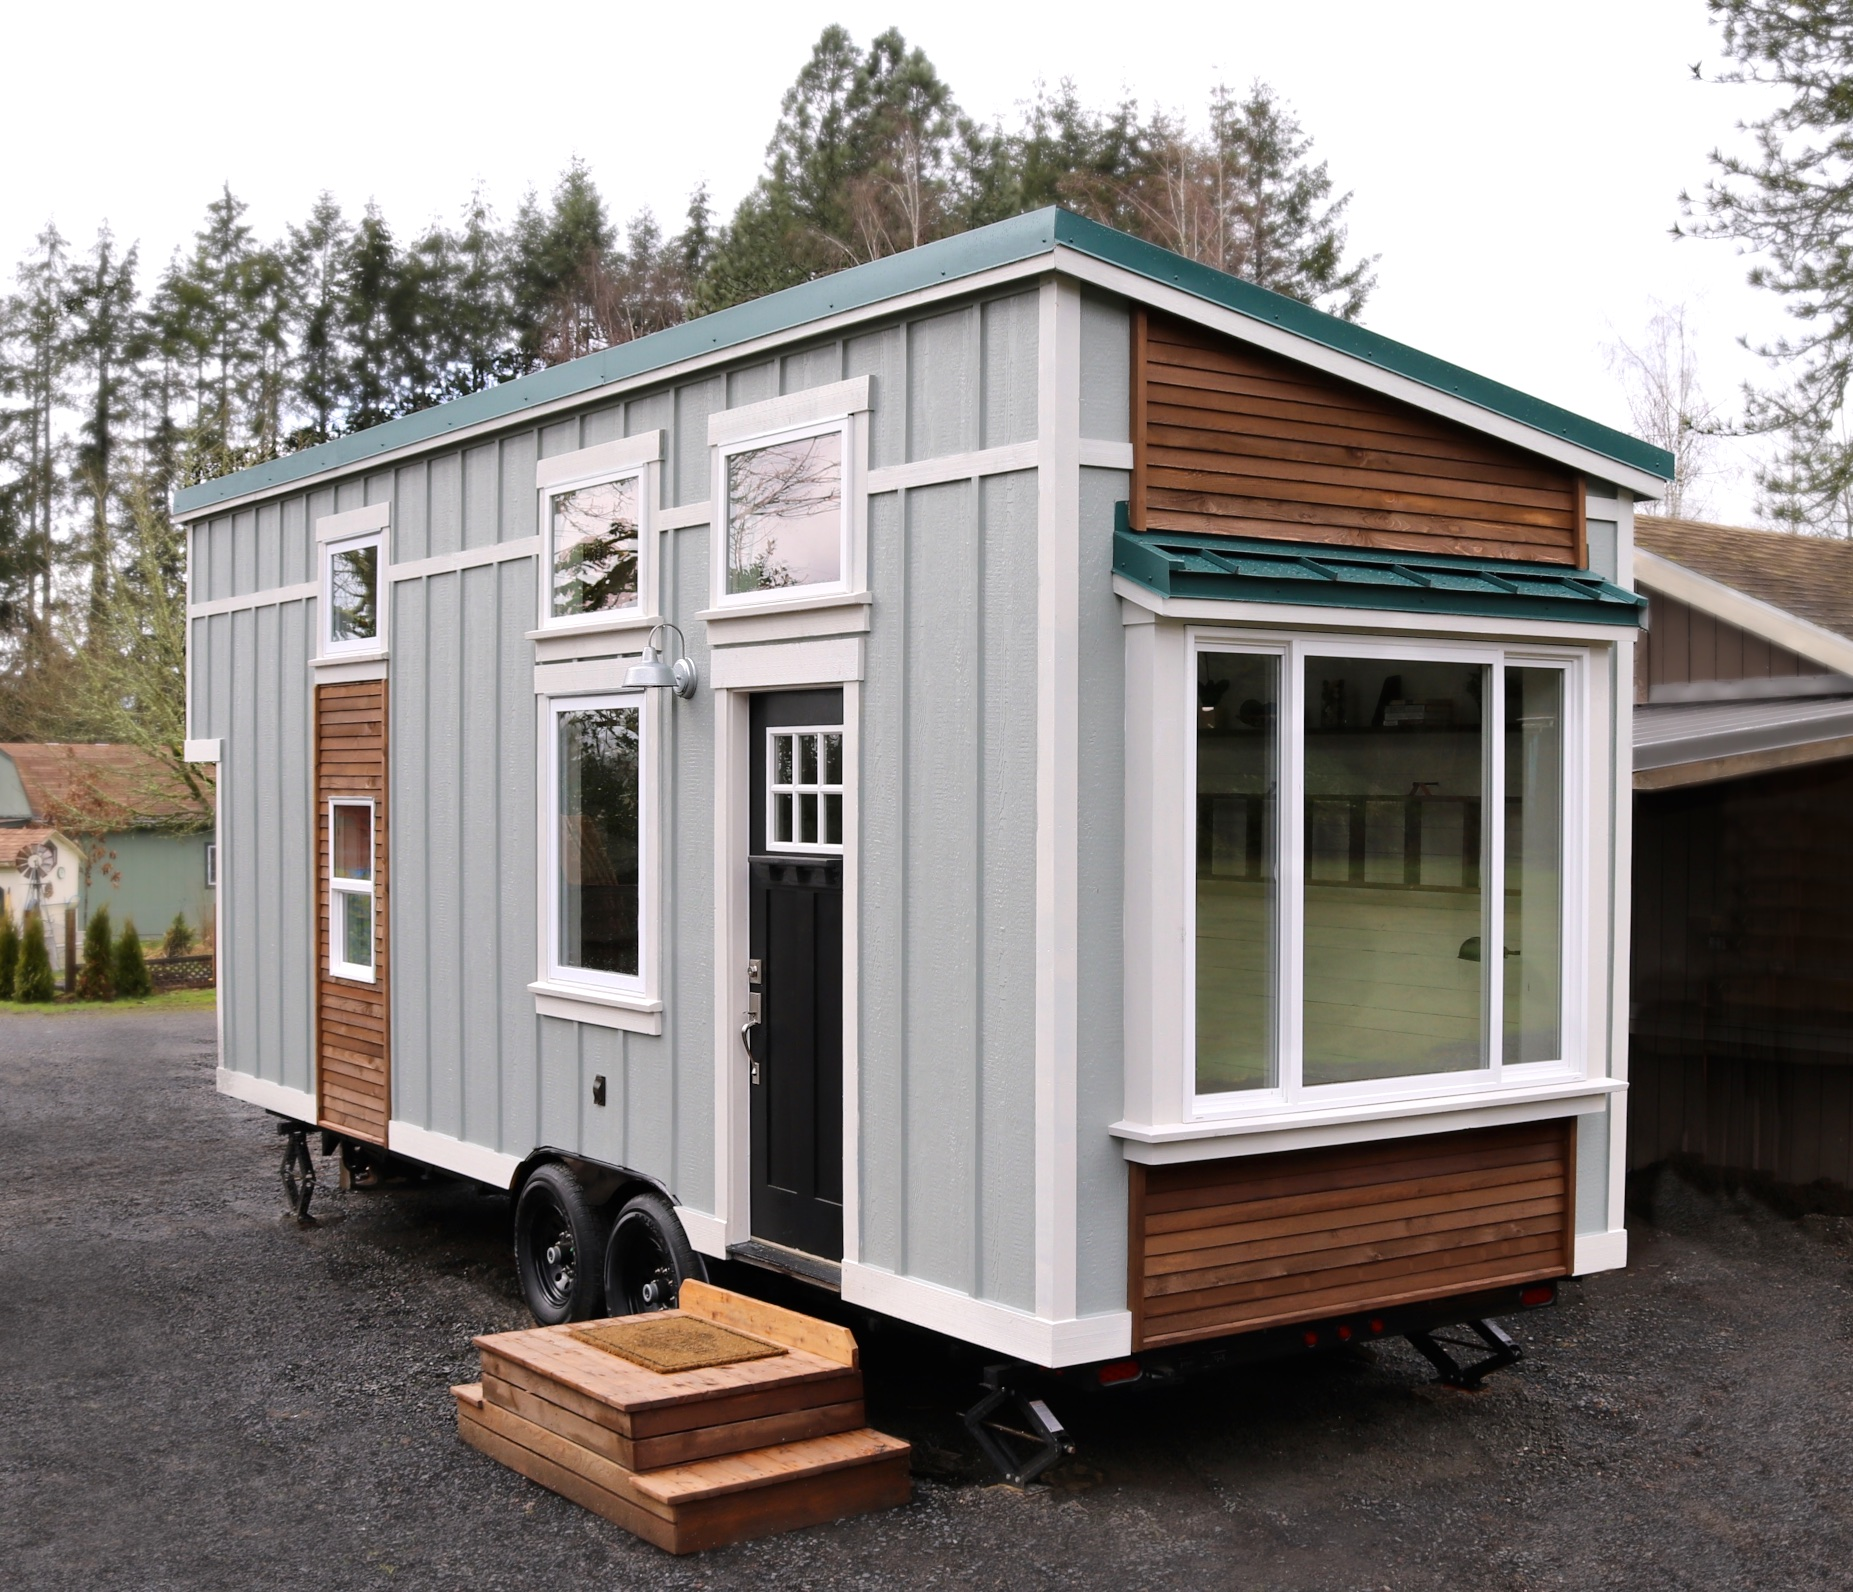 Tiny Getaway by Handcrafted Movement